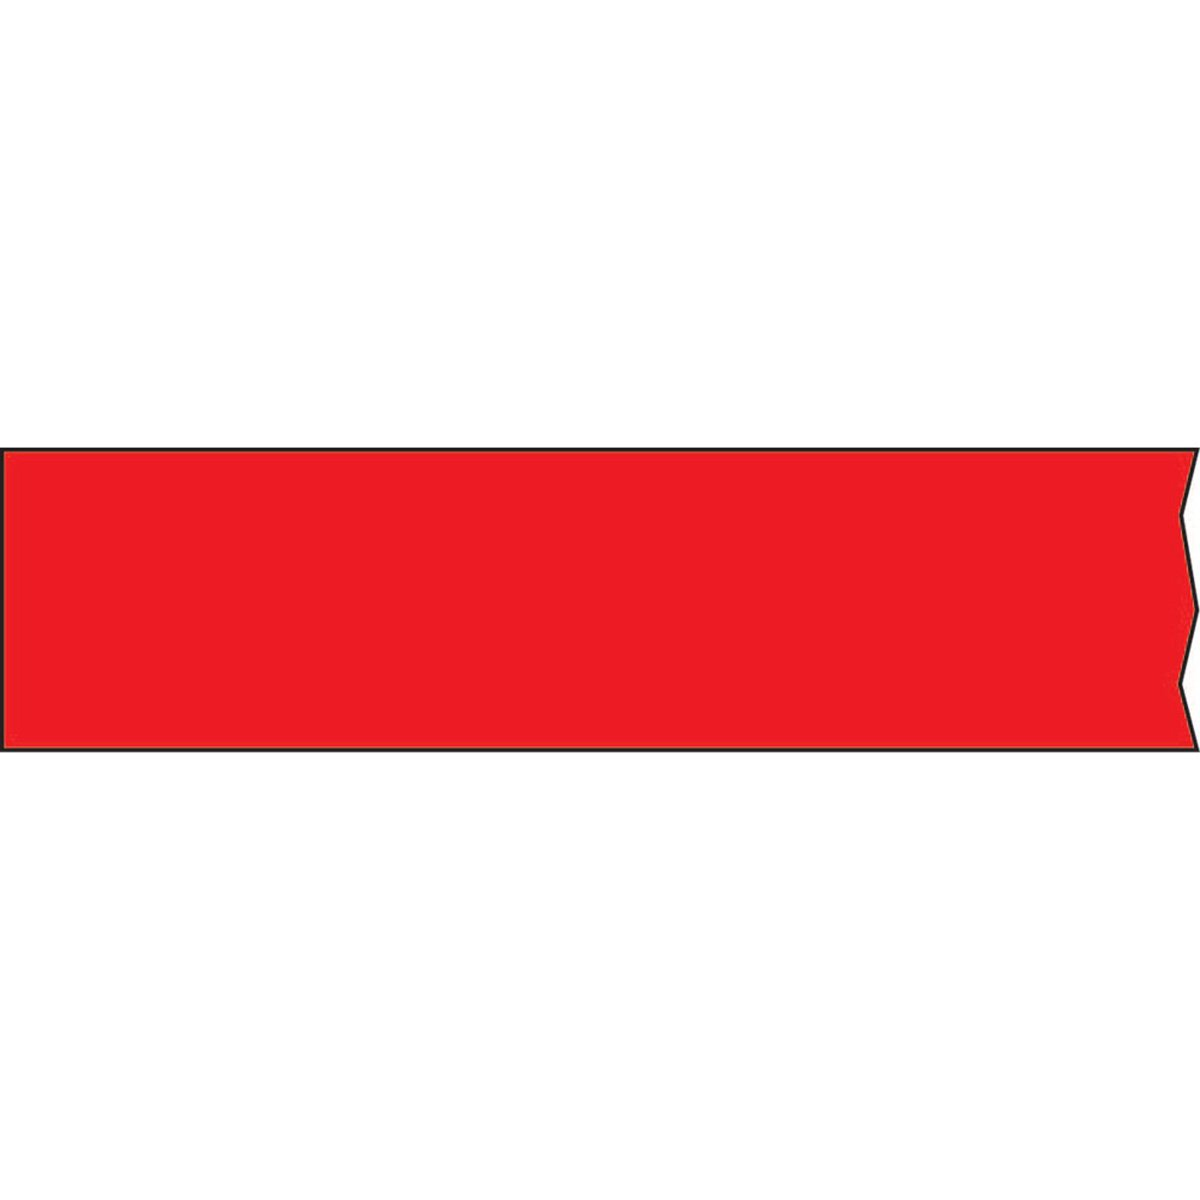 TIMETAPE T-160-5 Tape, Removable, 3'' Core, 1'' x 2160'', Imprints Red (Pack of 1)